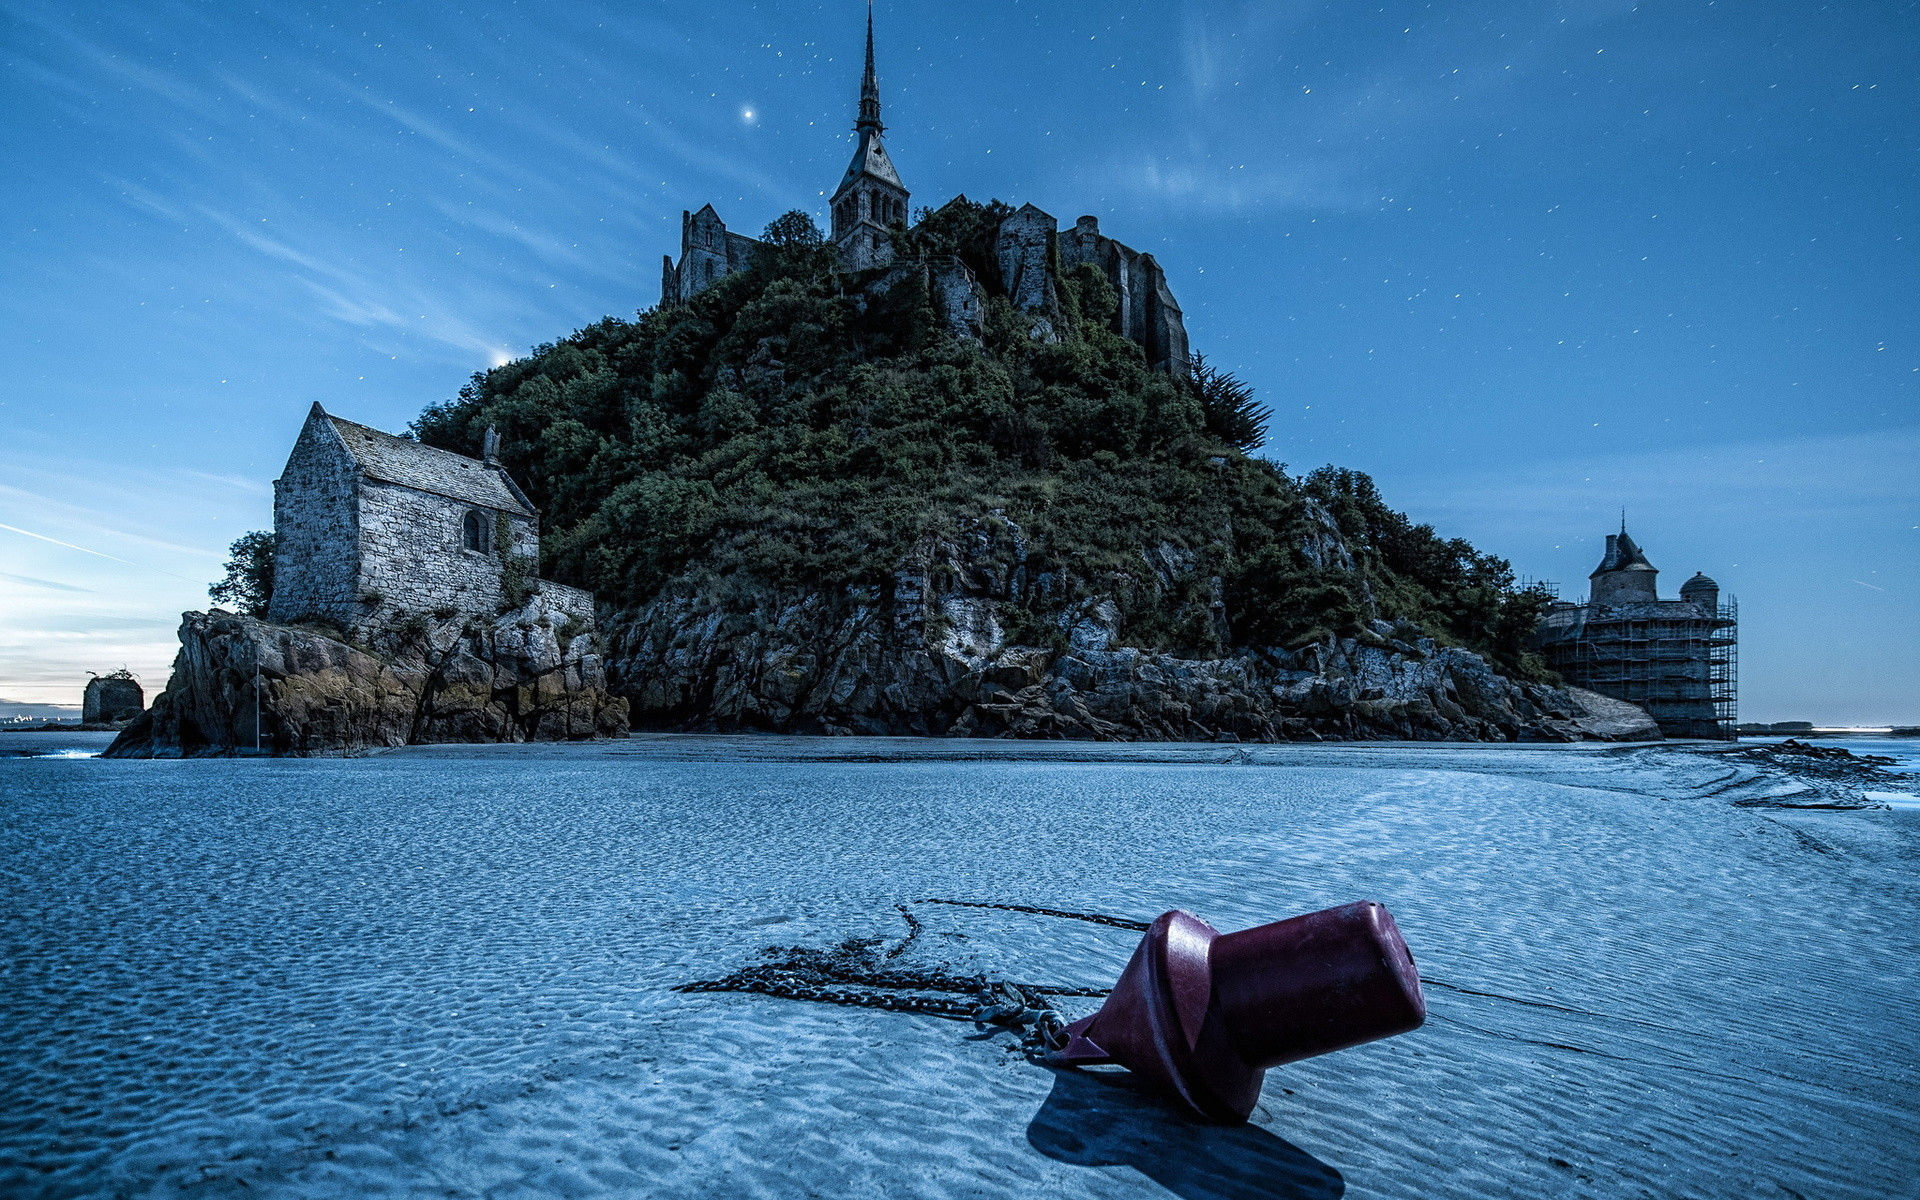 mount-st-michael-in-low-tide-under-stars-hdr-330818 (1)